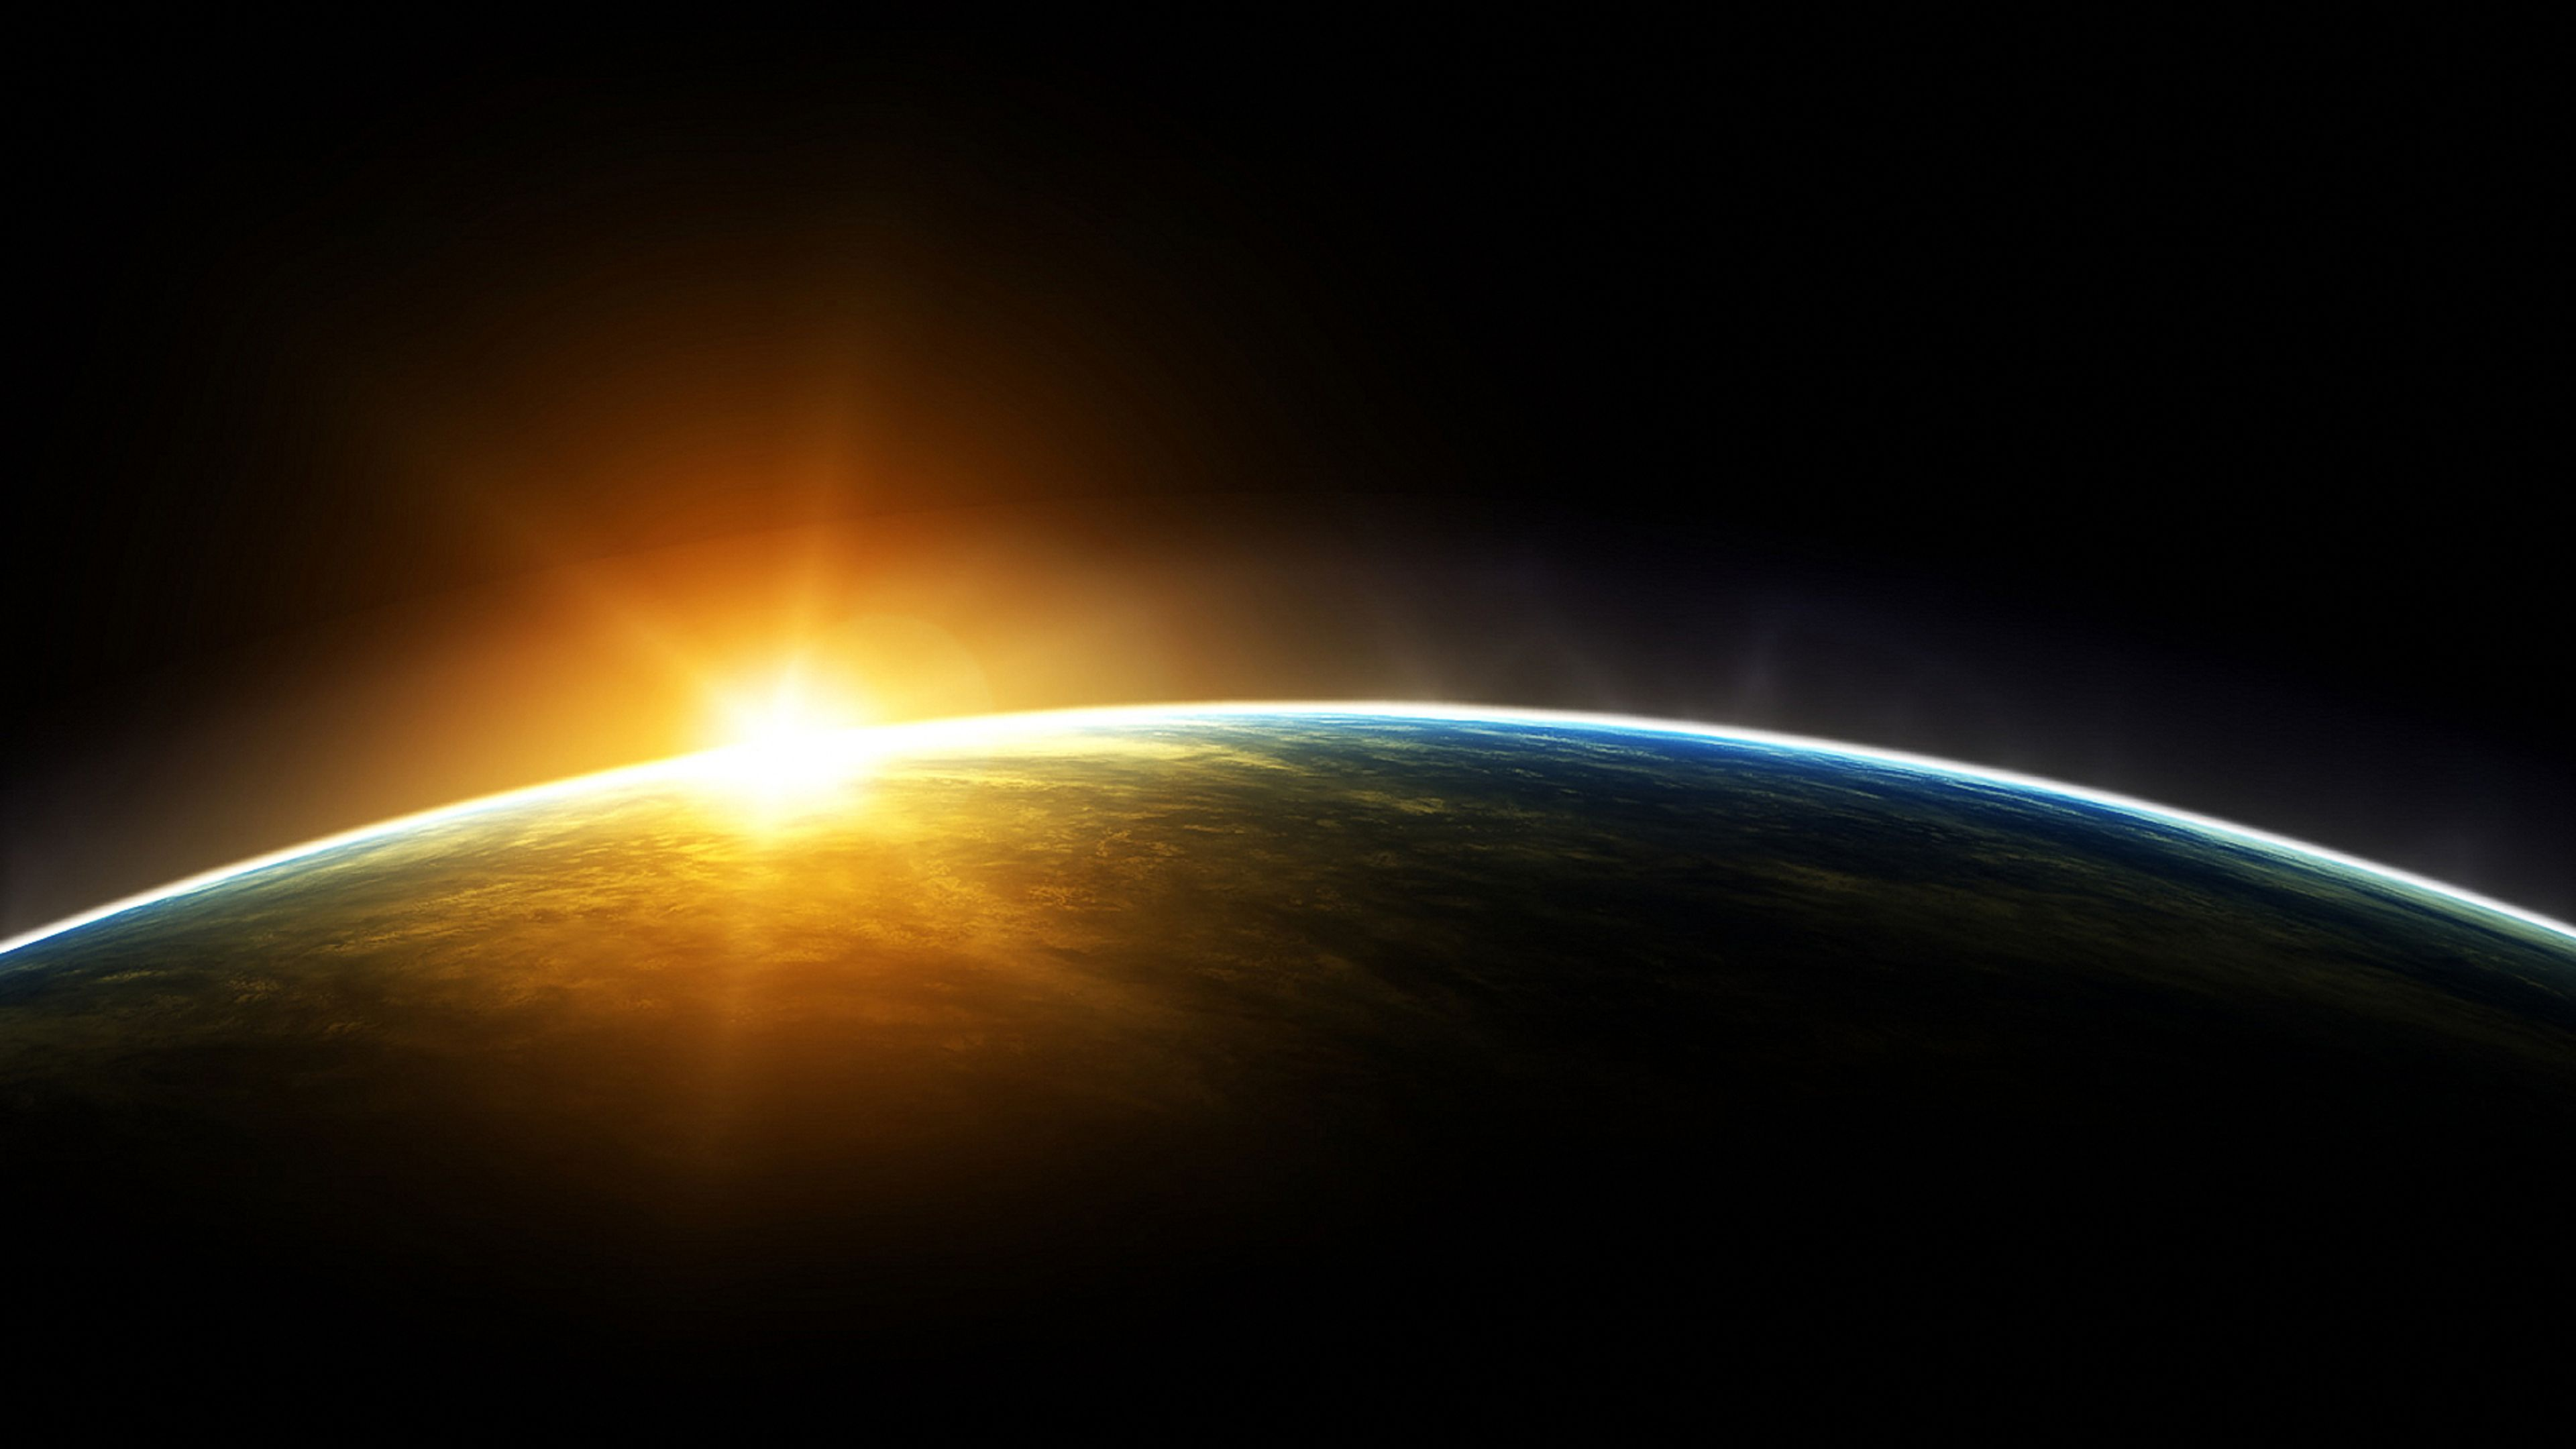 Page 2 of space wallpapers photos and desktop backgrounds - Top space wallpapers ...